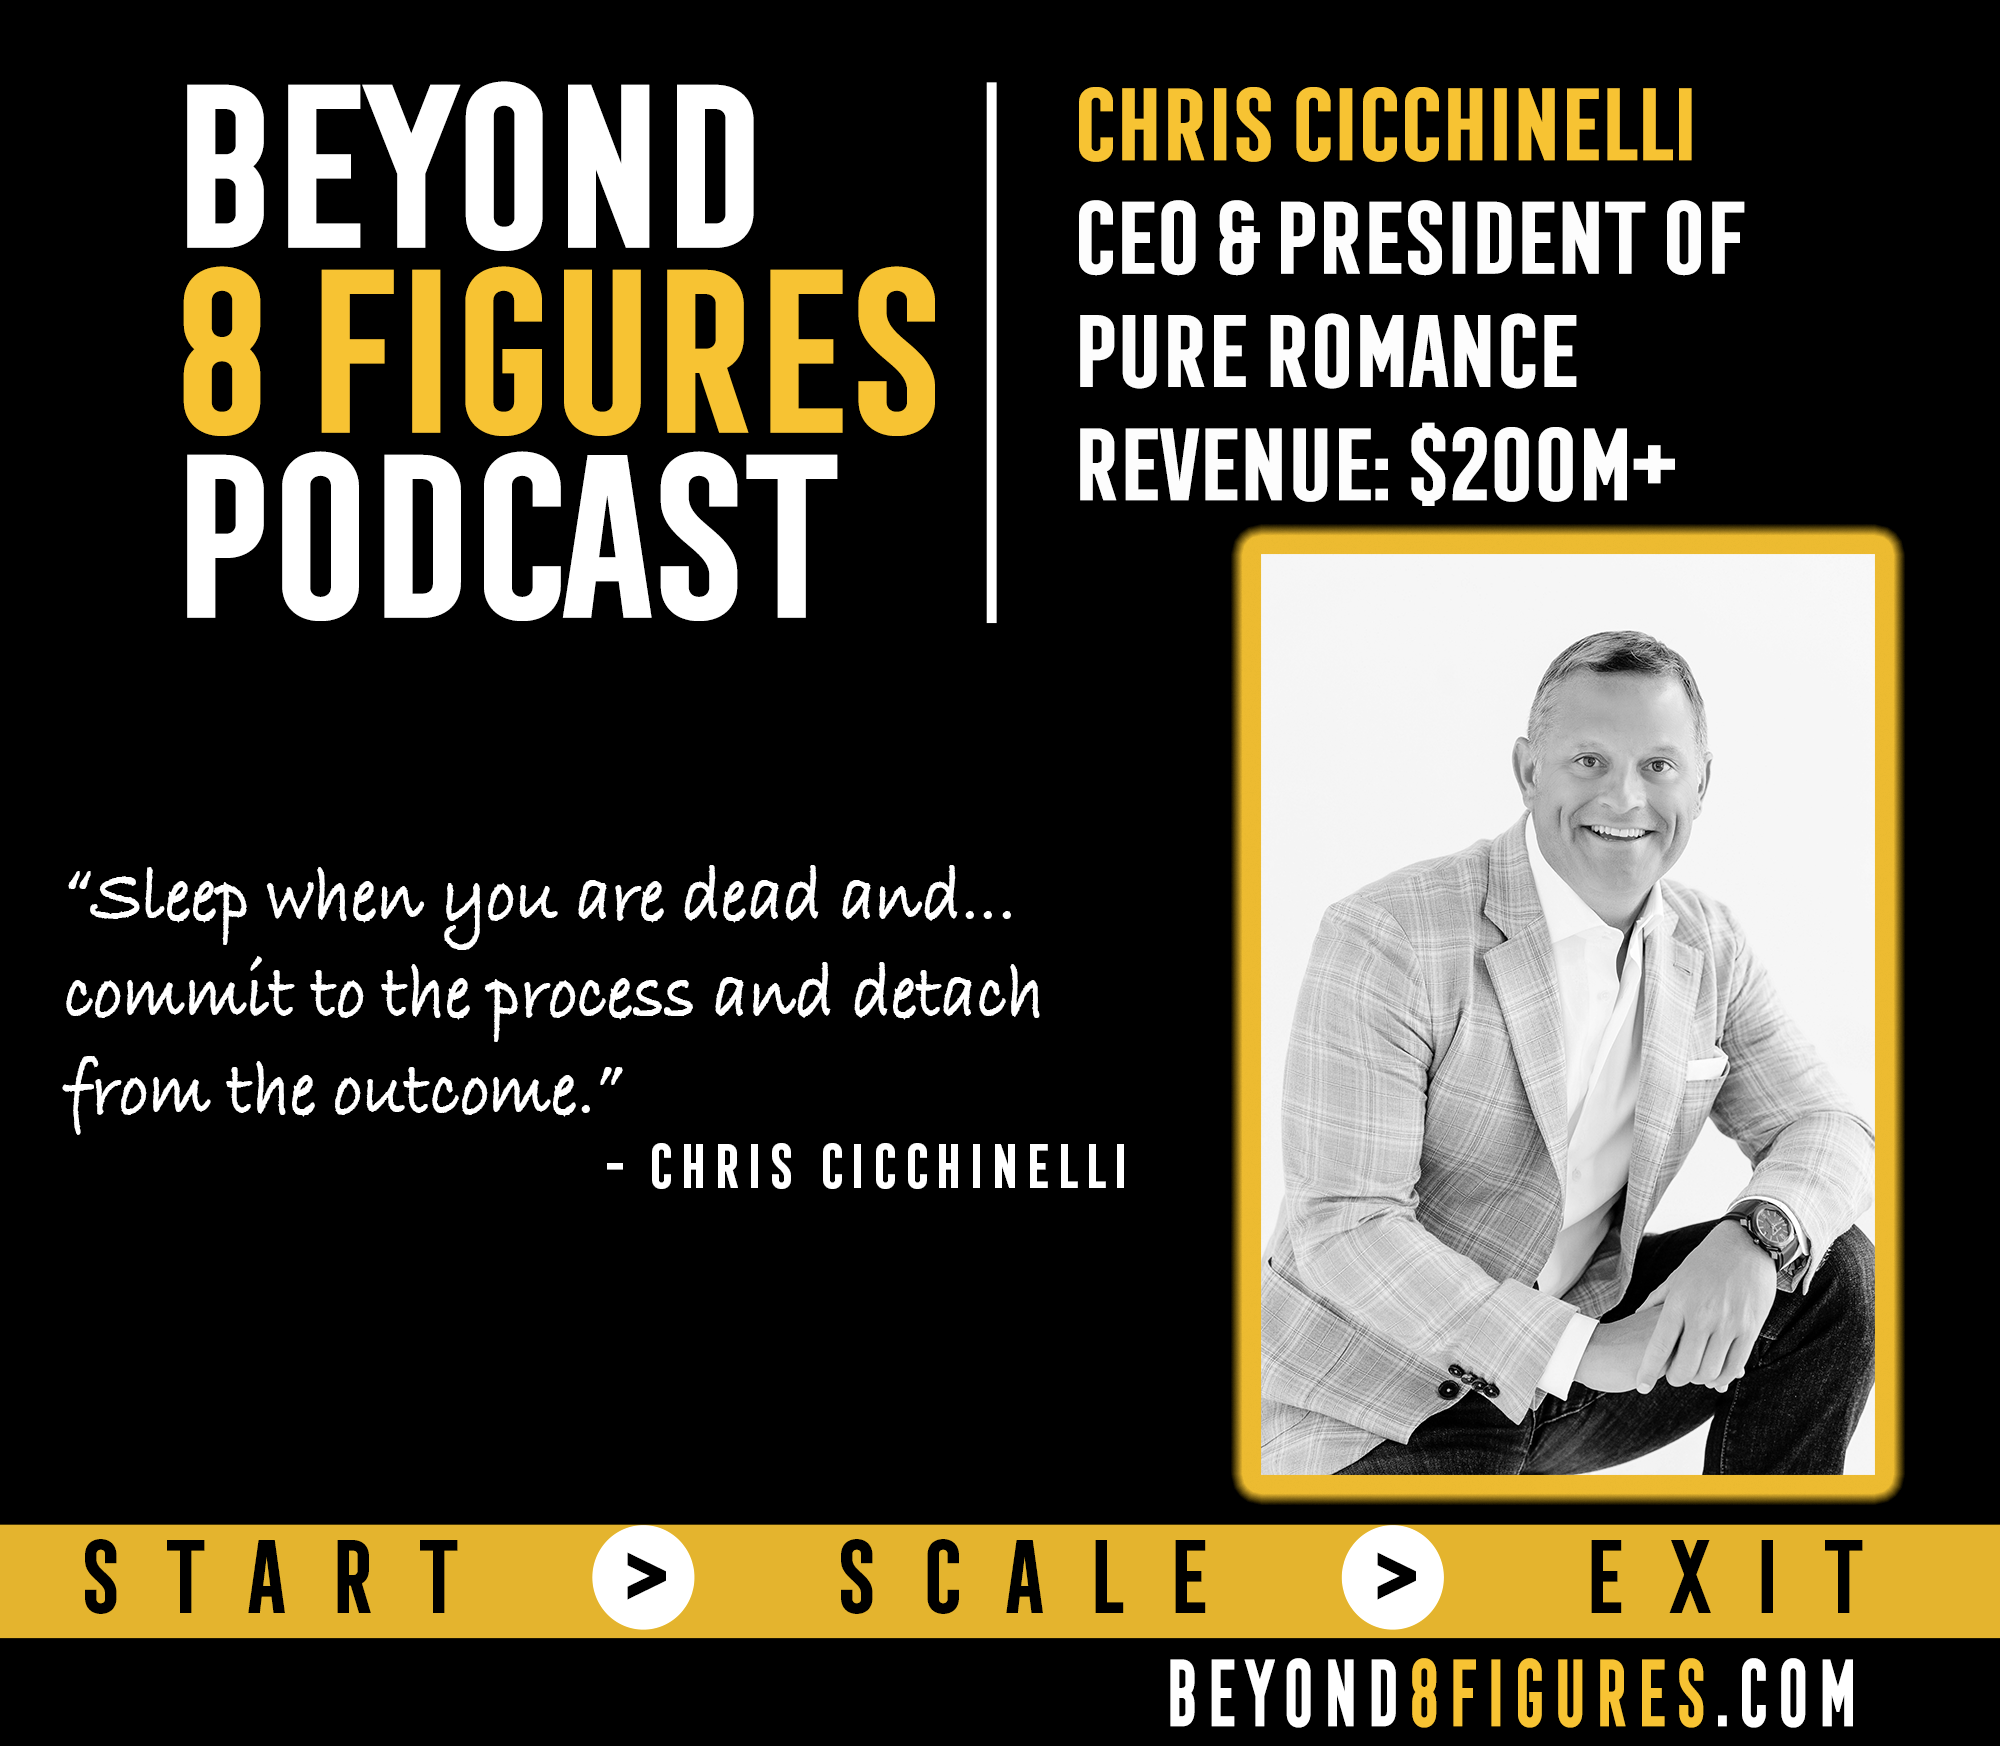 $200M+ Annually – Chris Cicchinelli, Pure Romance